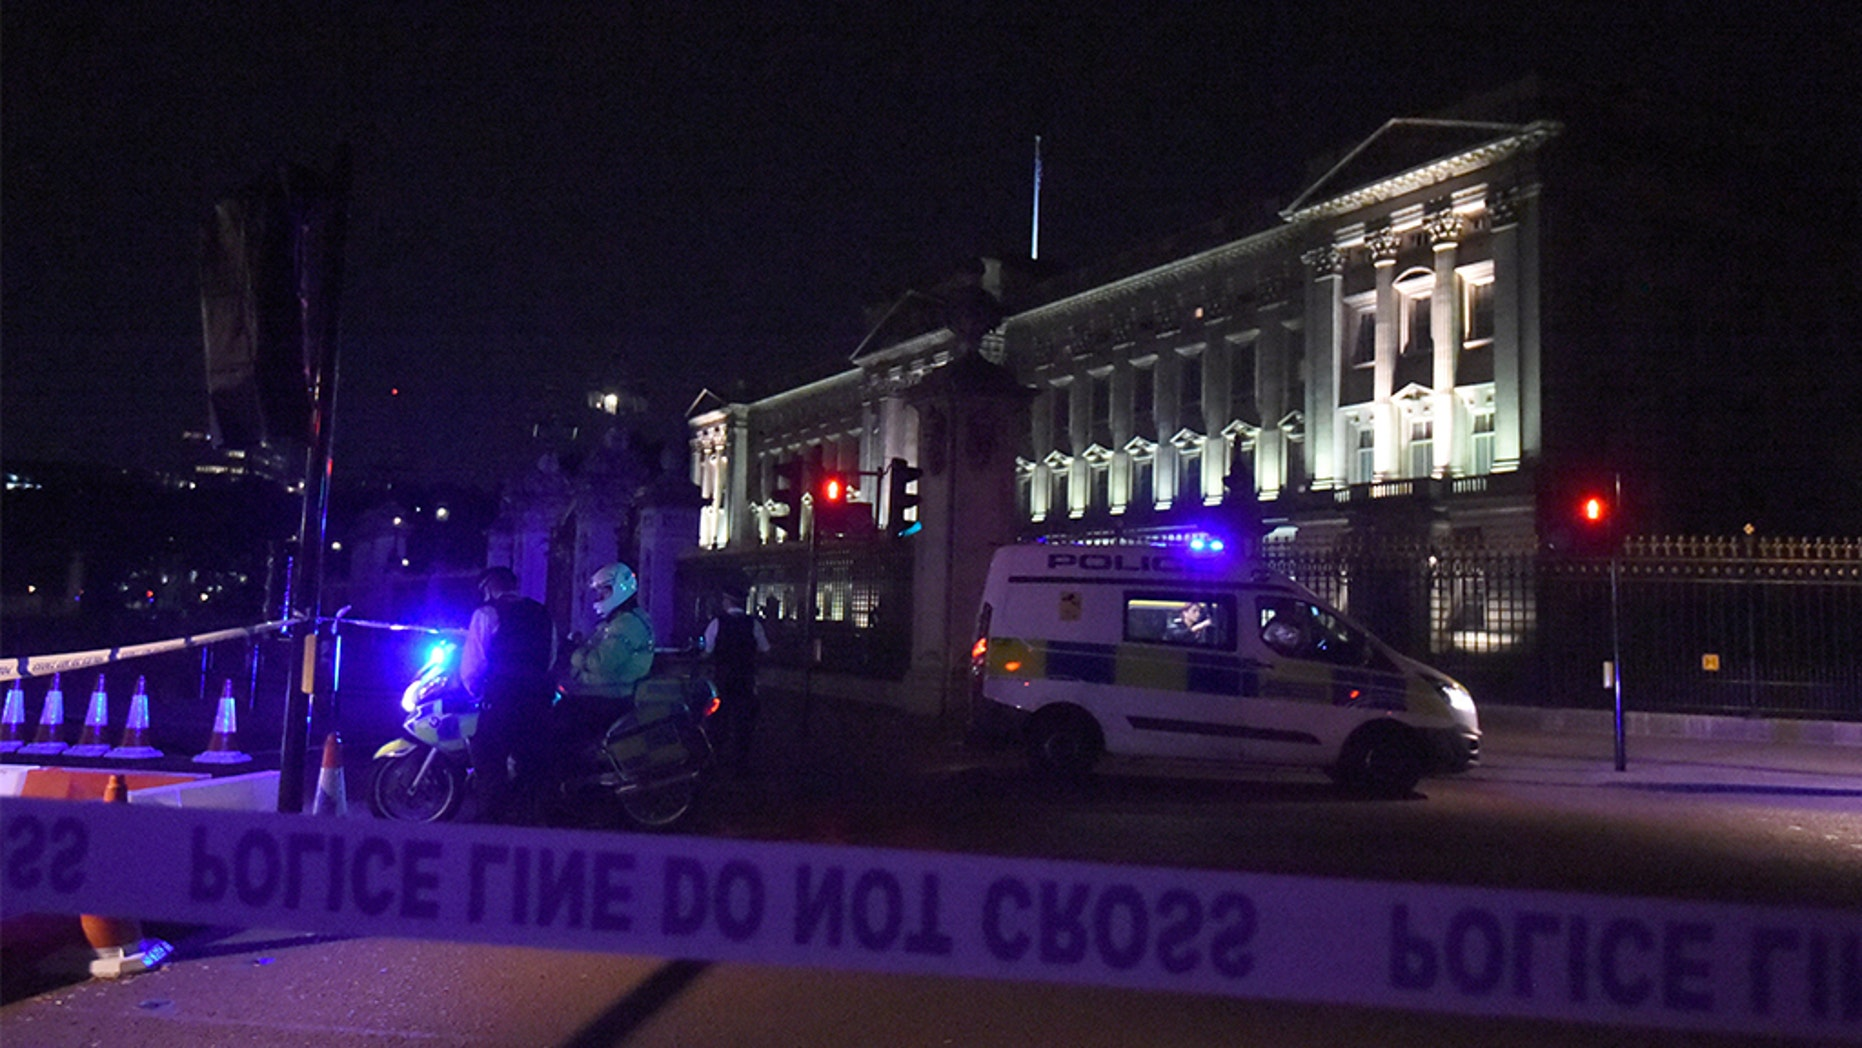 Police cars surround Buckingham Palace after August 2017 incident. Lauren Hurley/PA Wire